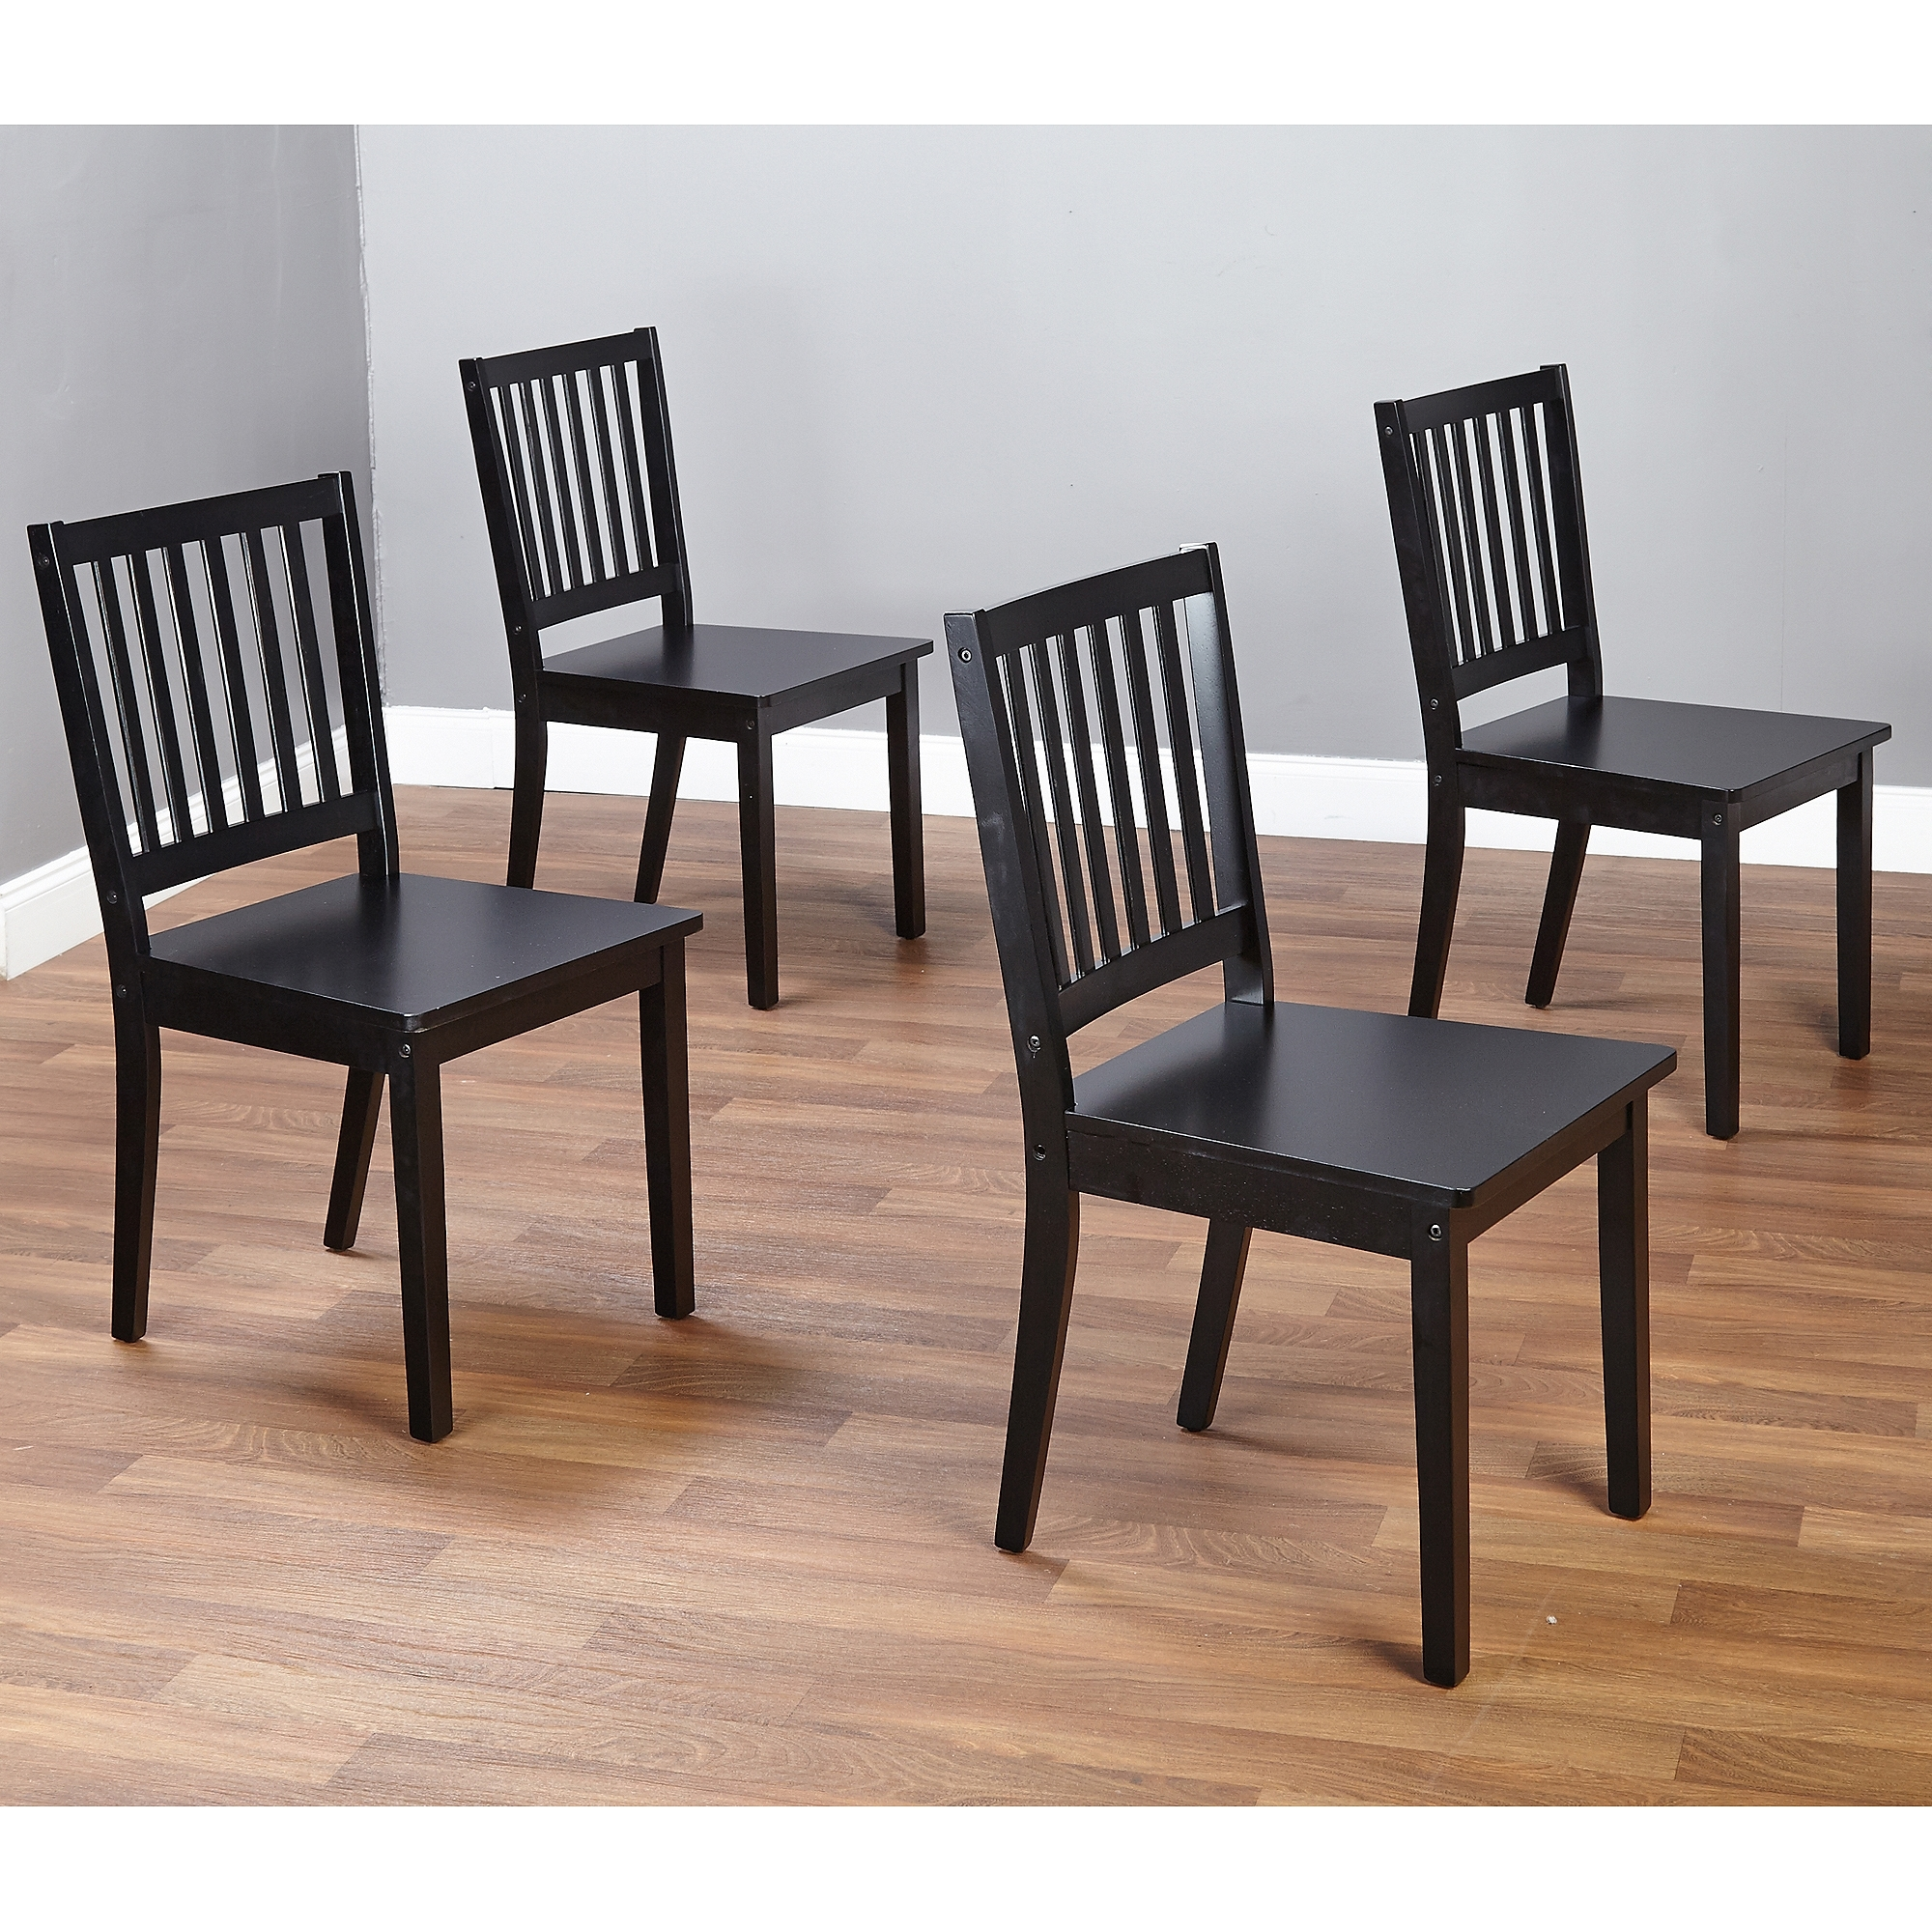 Widely Used Shaker Dining Chairs, Set Of 4, Espresso – Walmart For Dining Table Chair Sets (View 15 of 25)